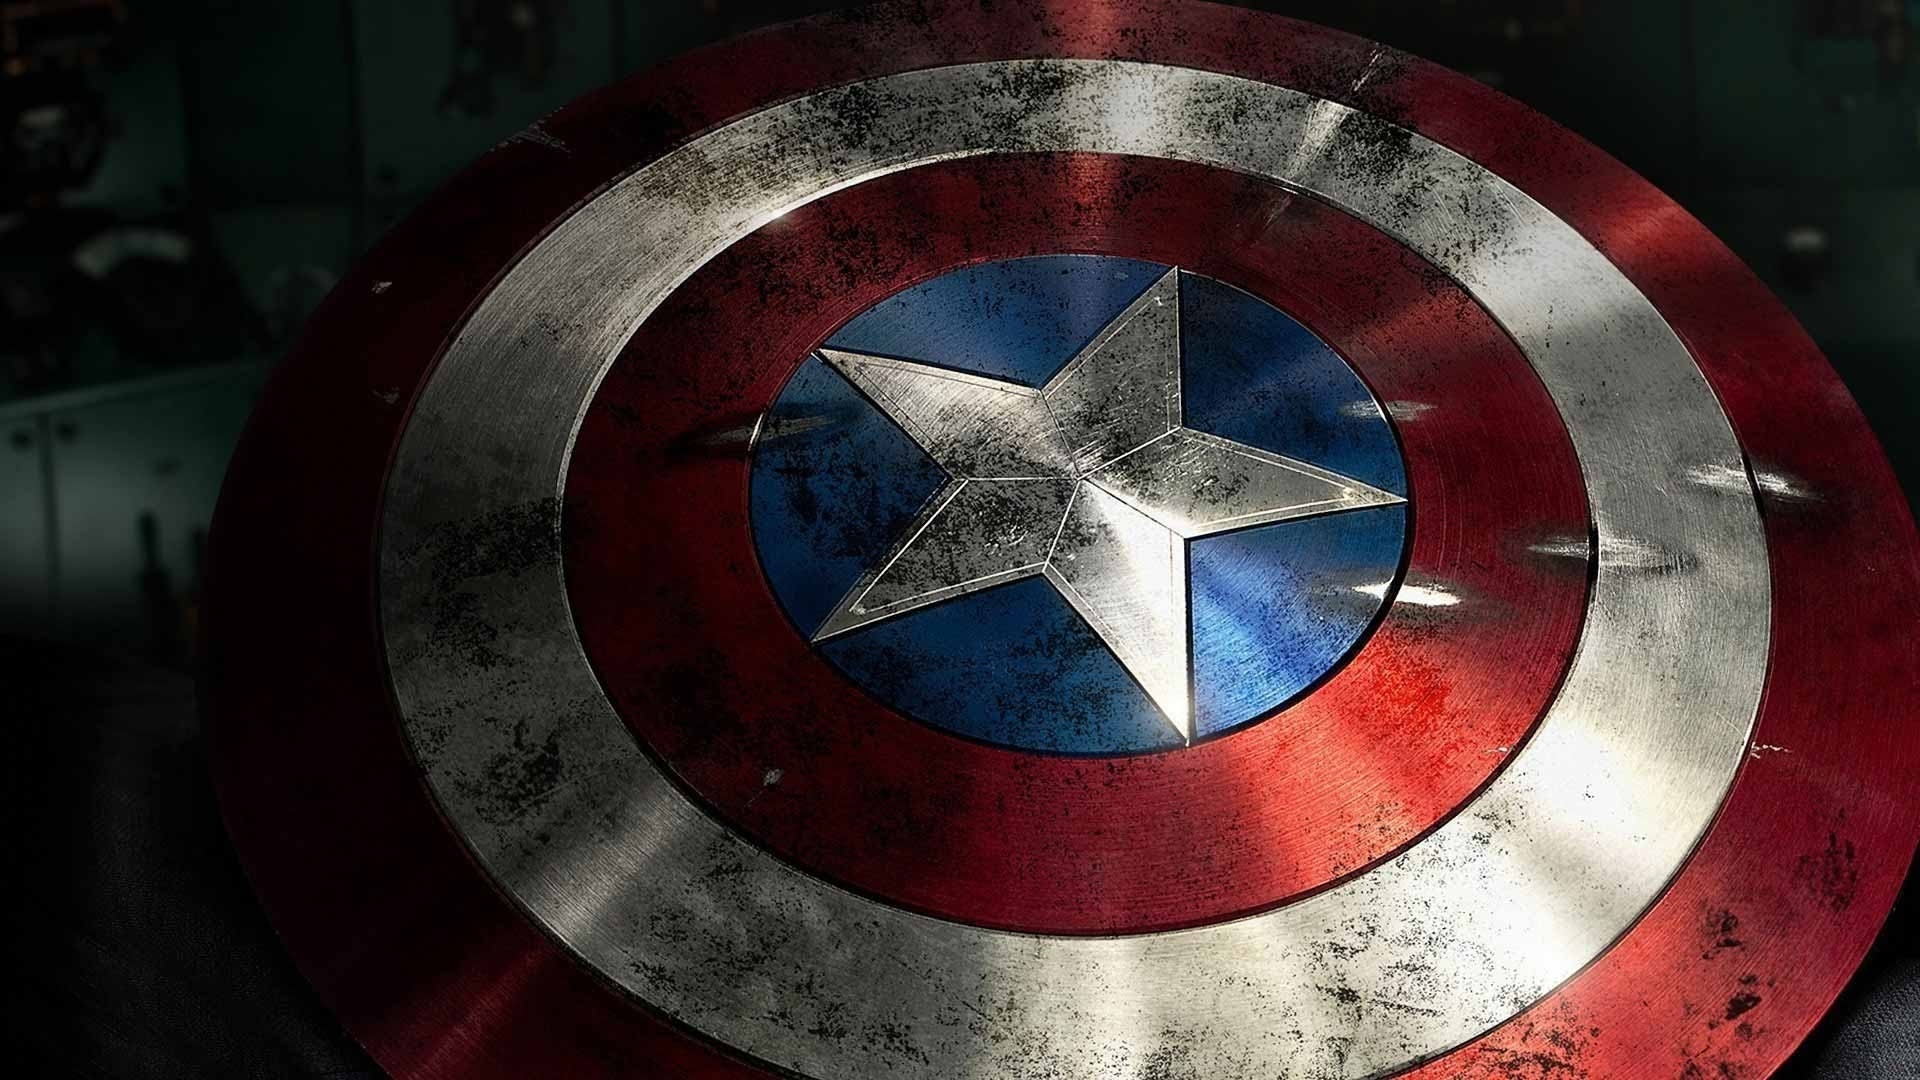 captain america's shield wallpapers - wallpaper cave